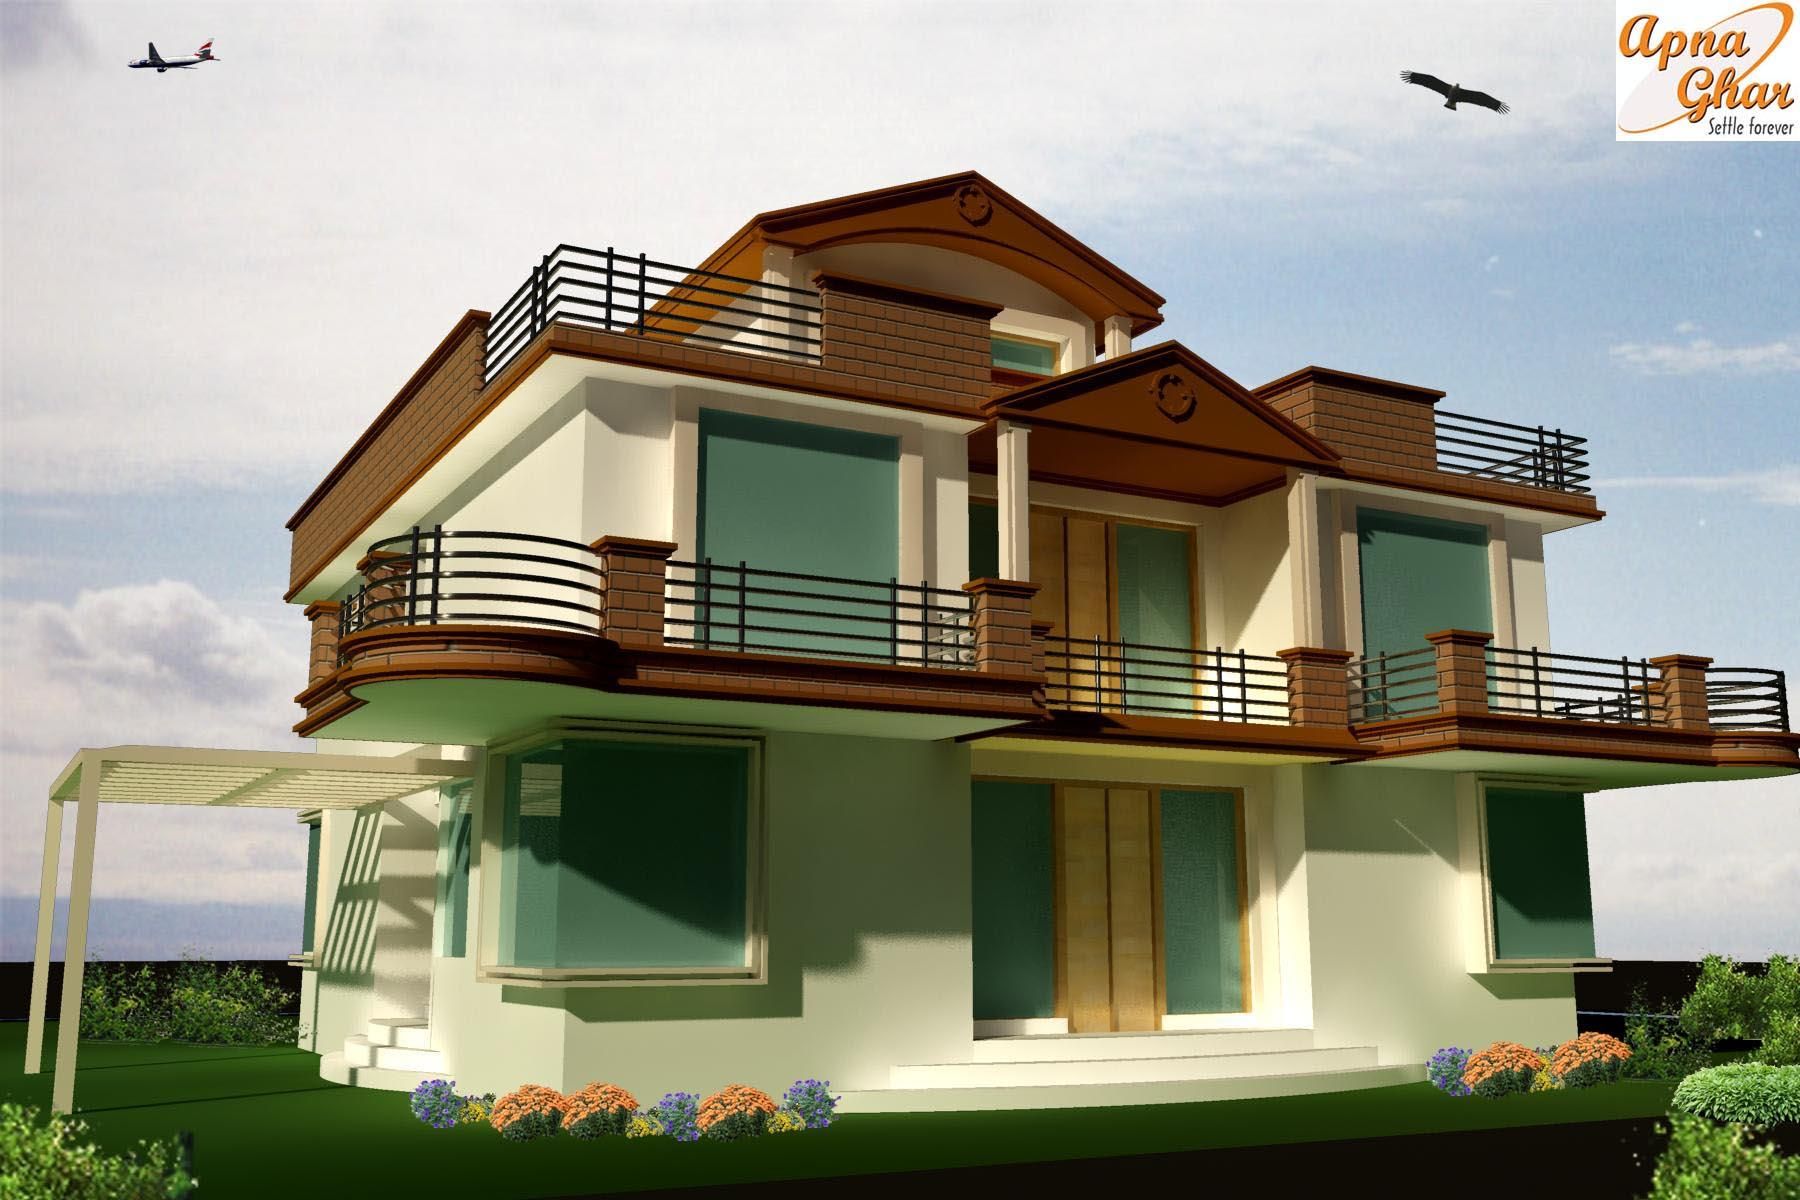 Beautiful home front elevation designs and ideas home design decorating remodeling ideas Front of home design ideas